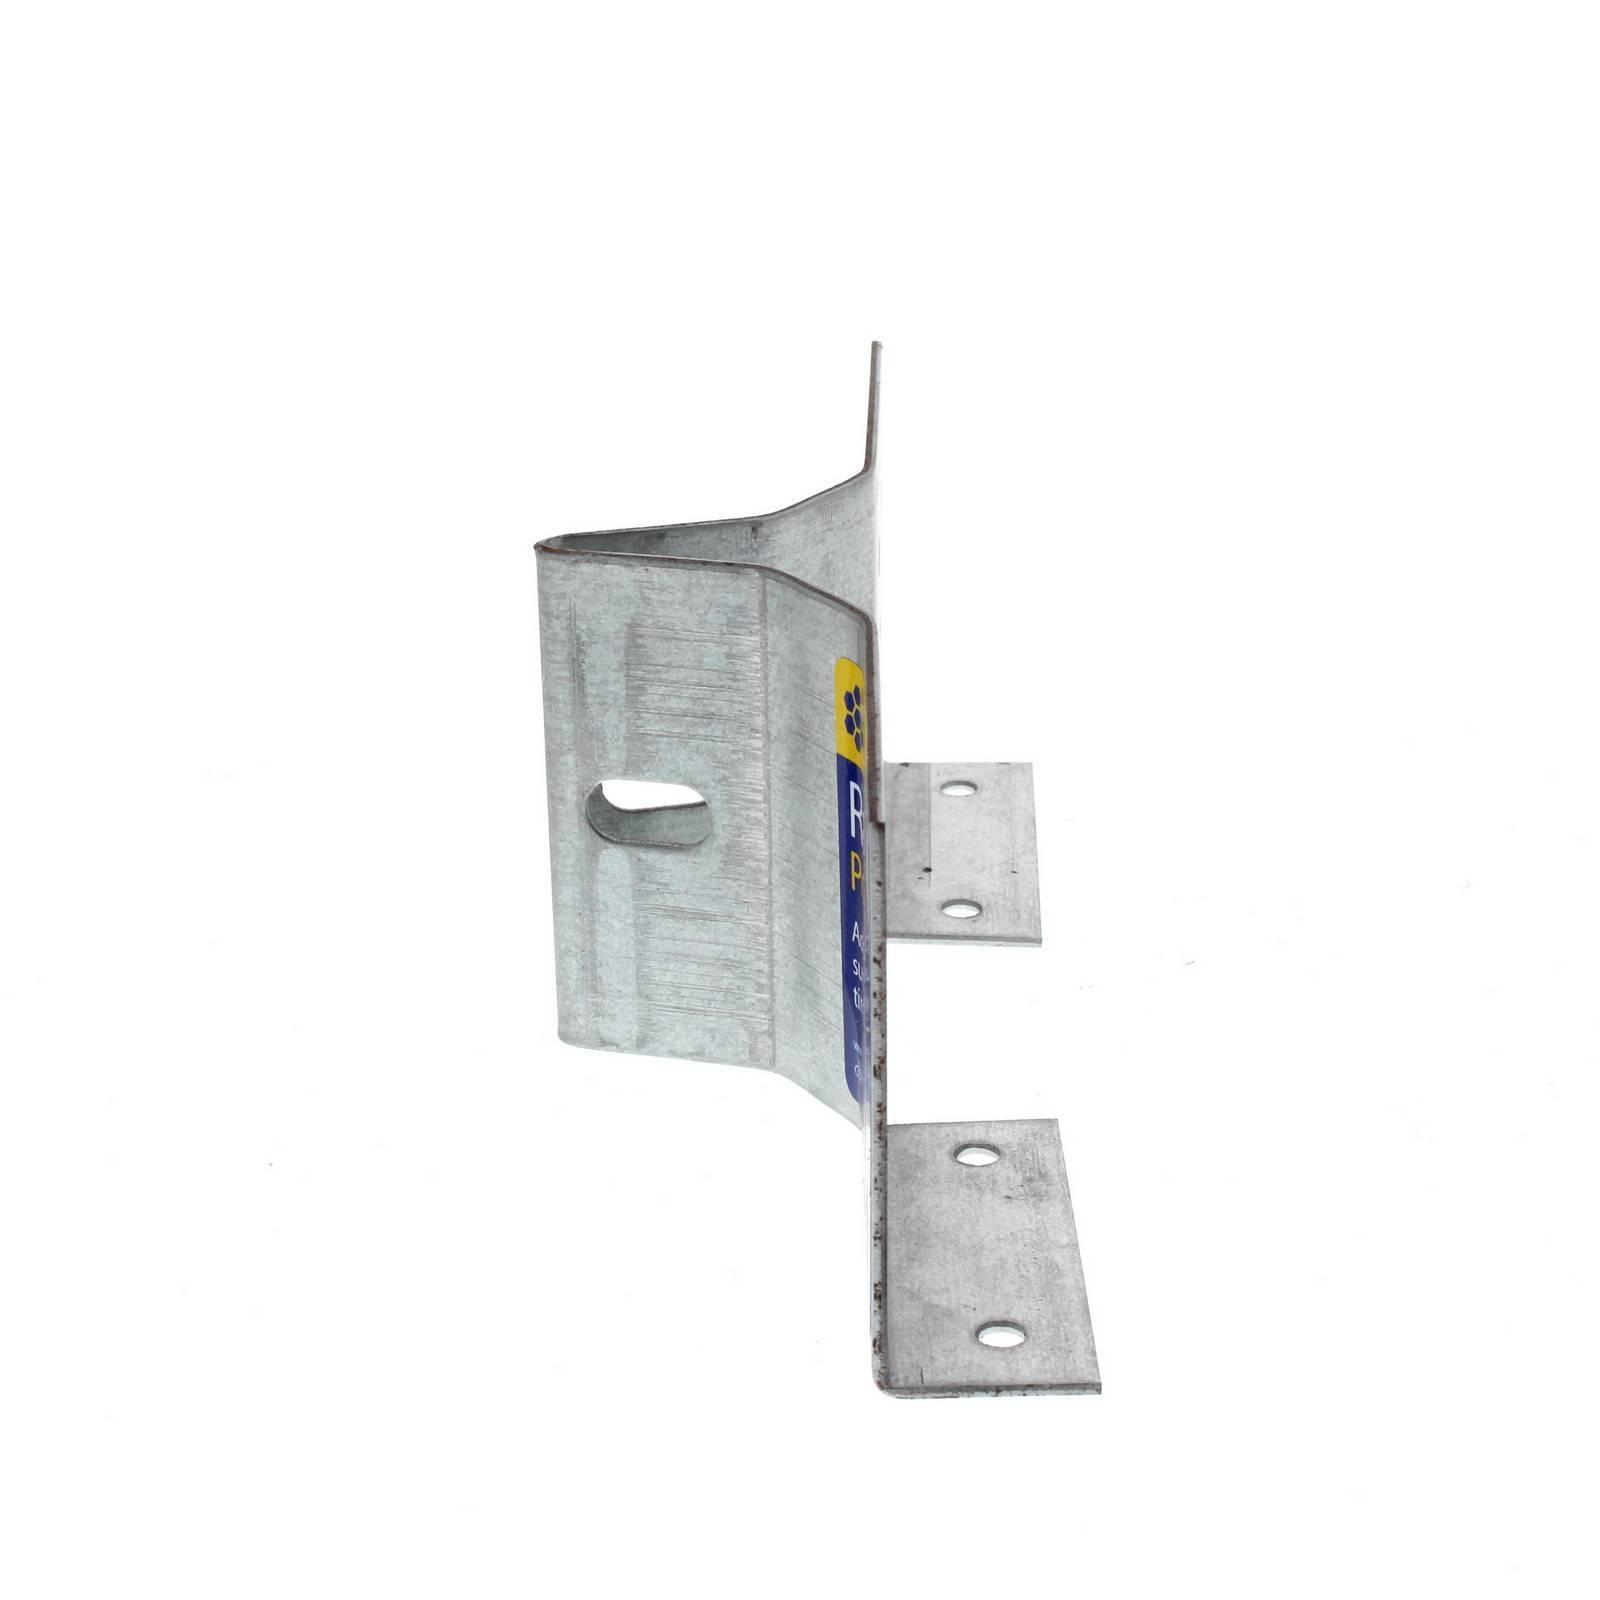 Post Bracket Rail Fencing Whites Wires Ideal For Paling Fences And ...